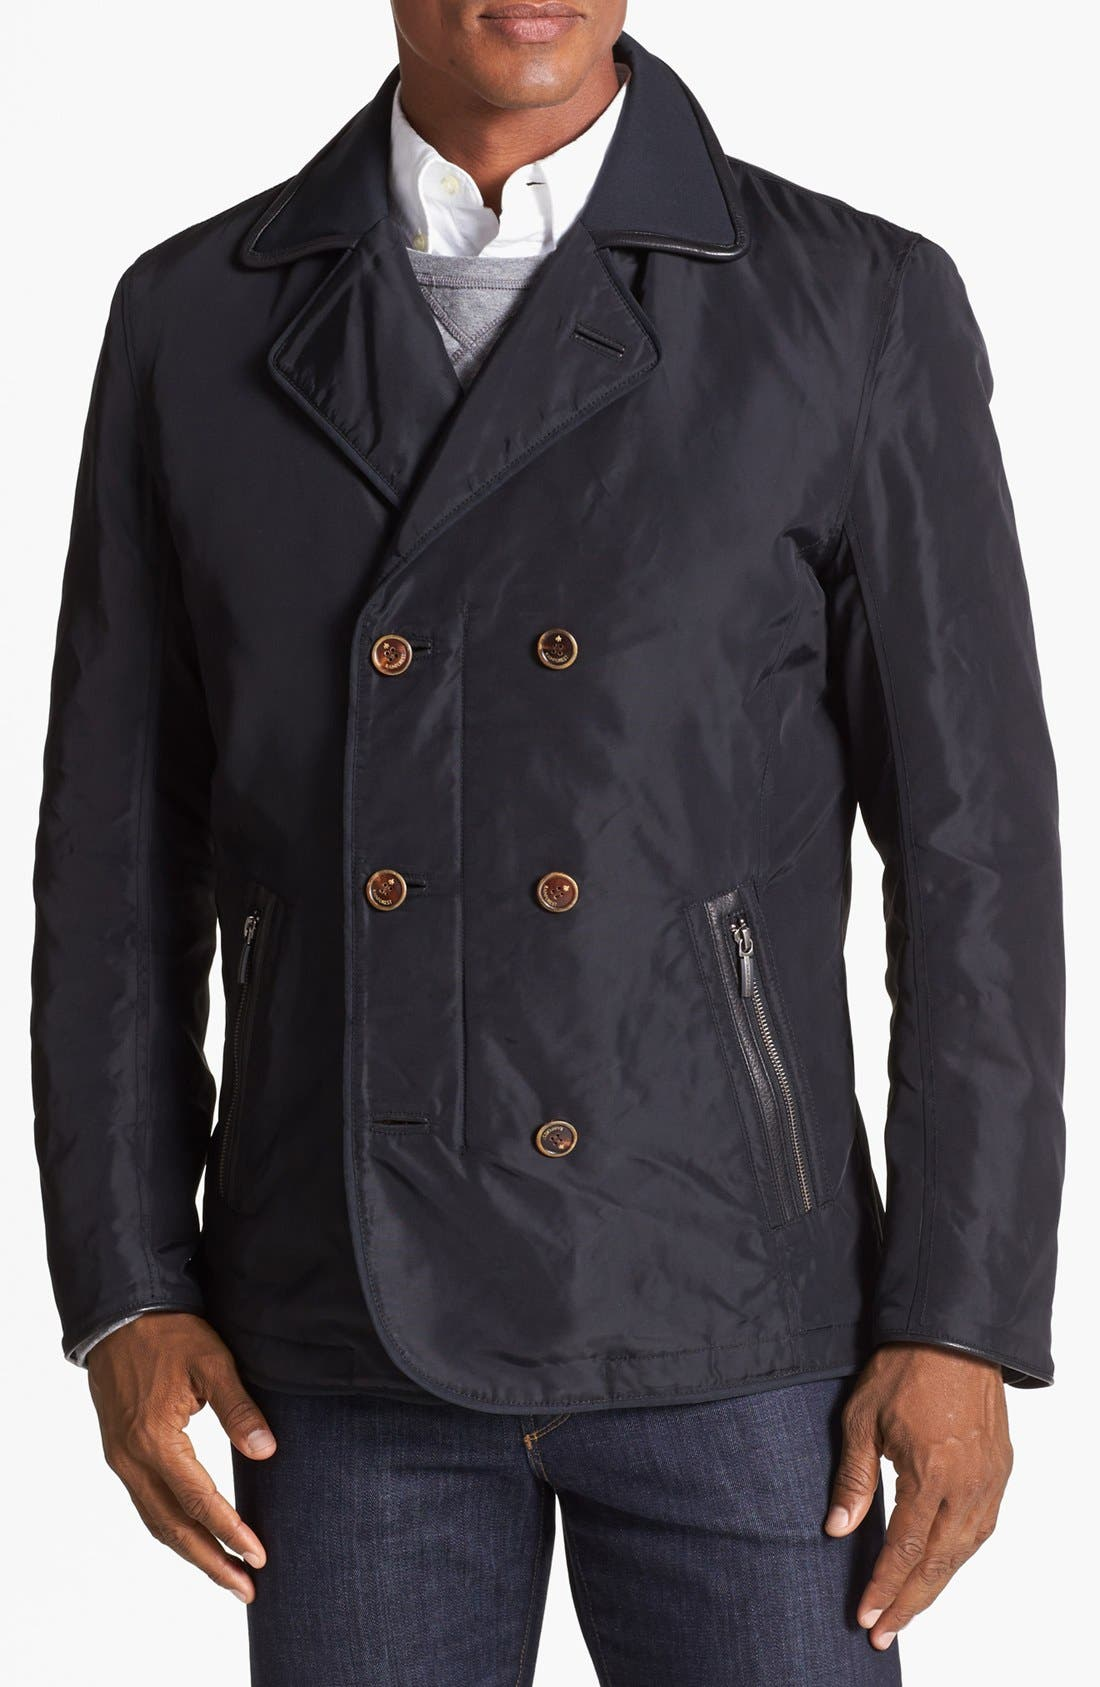 Main Image - RAINFOREST Double Breasted Water Repellent Nylon Blazer